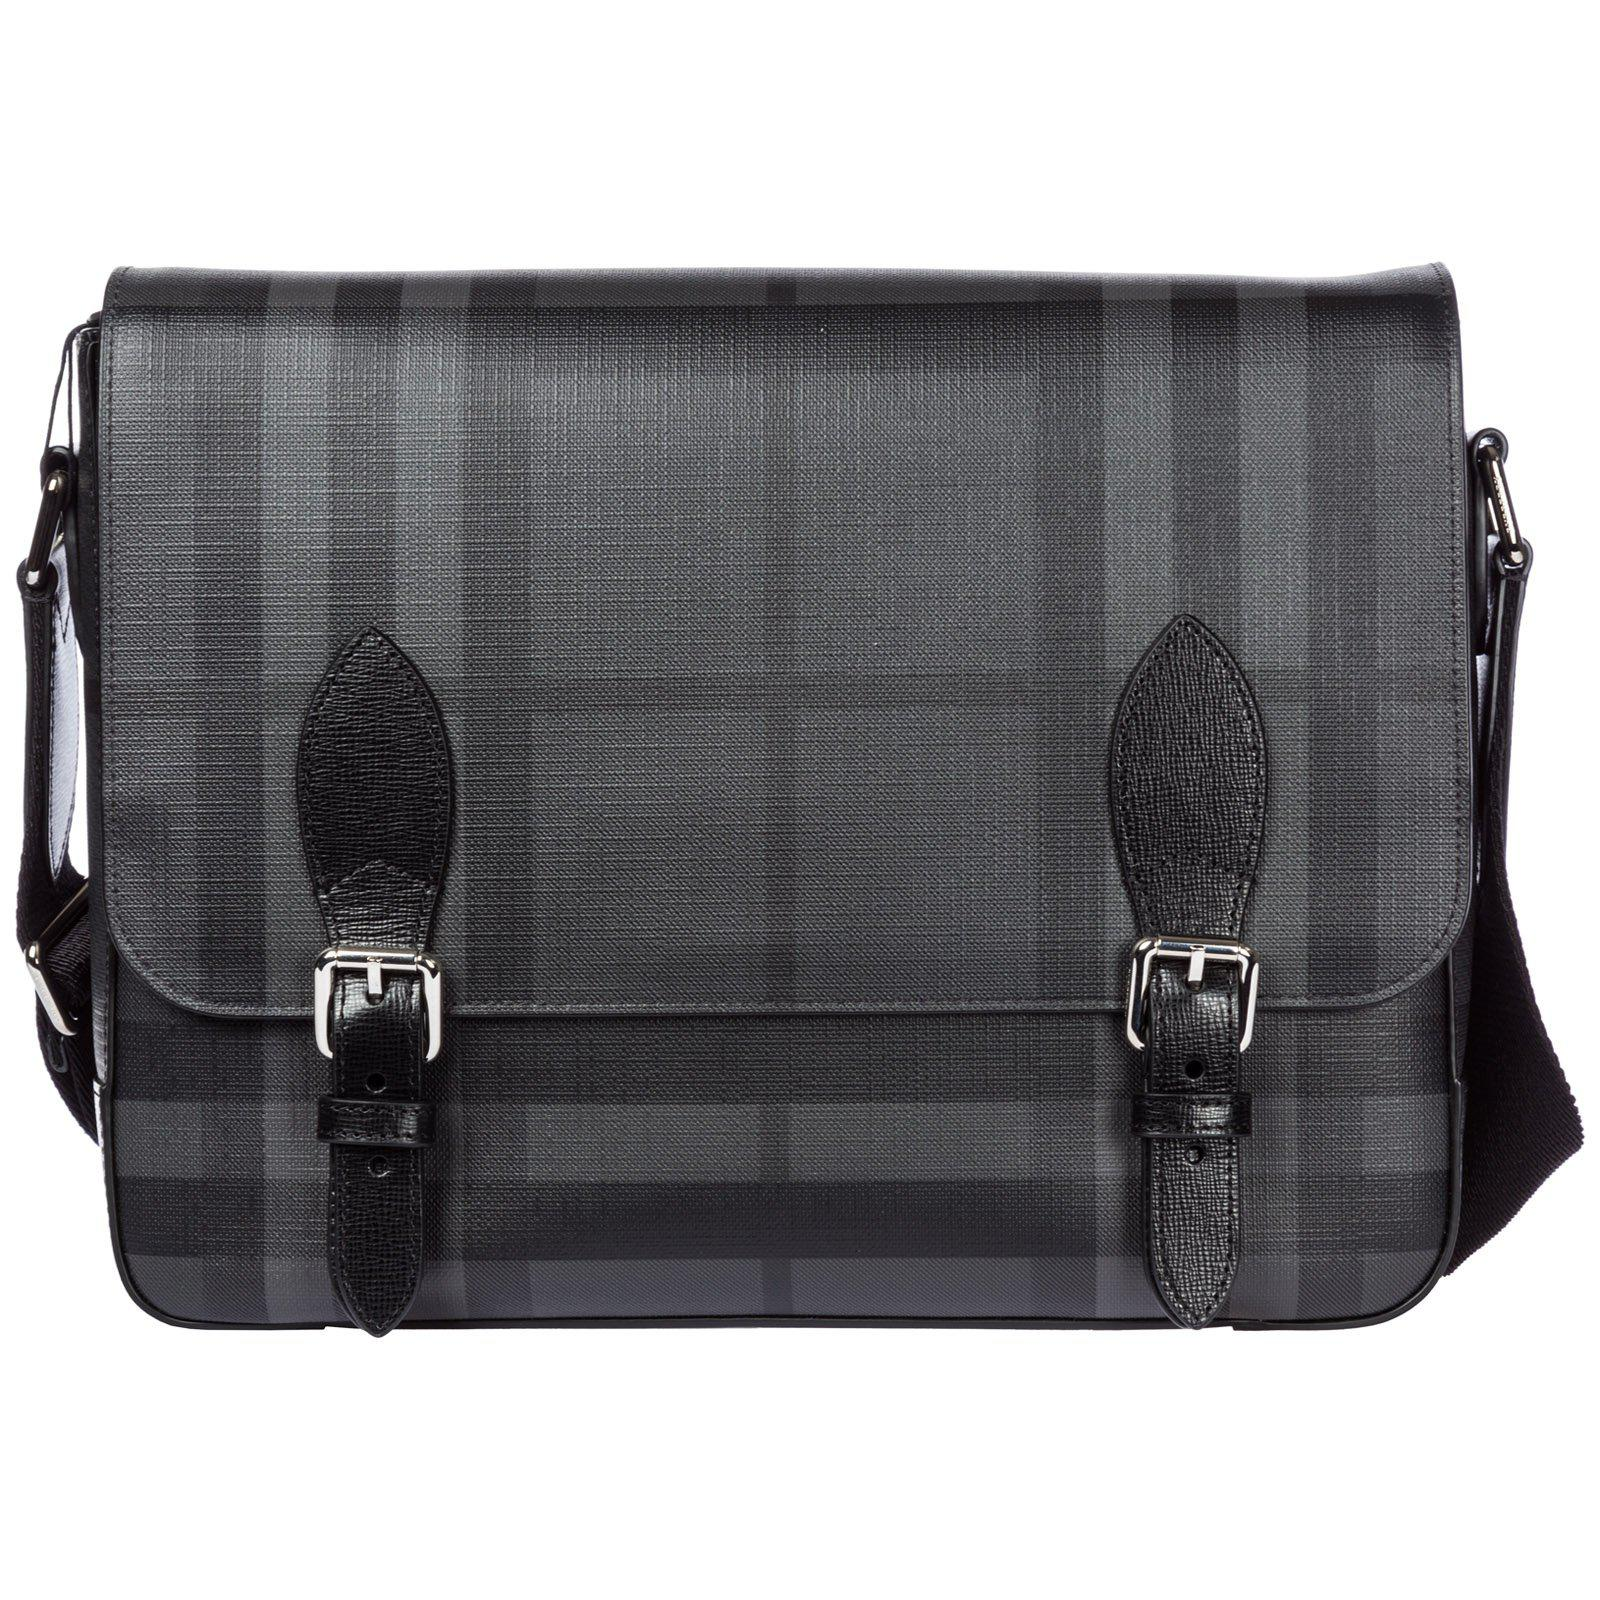 d98d374ef227 Lyst - Burberry Checked Messenger Bag in Black